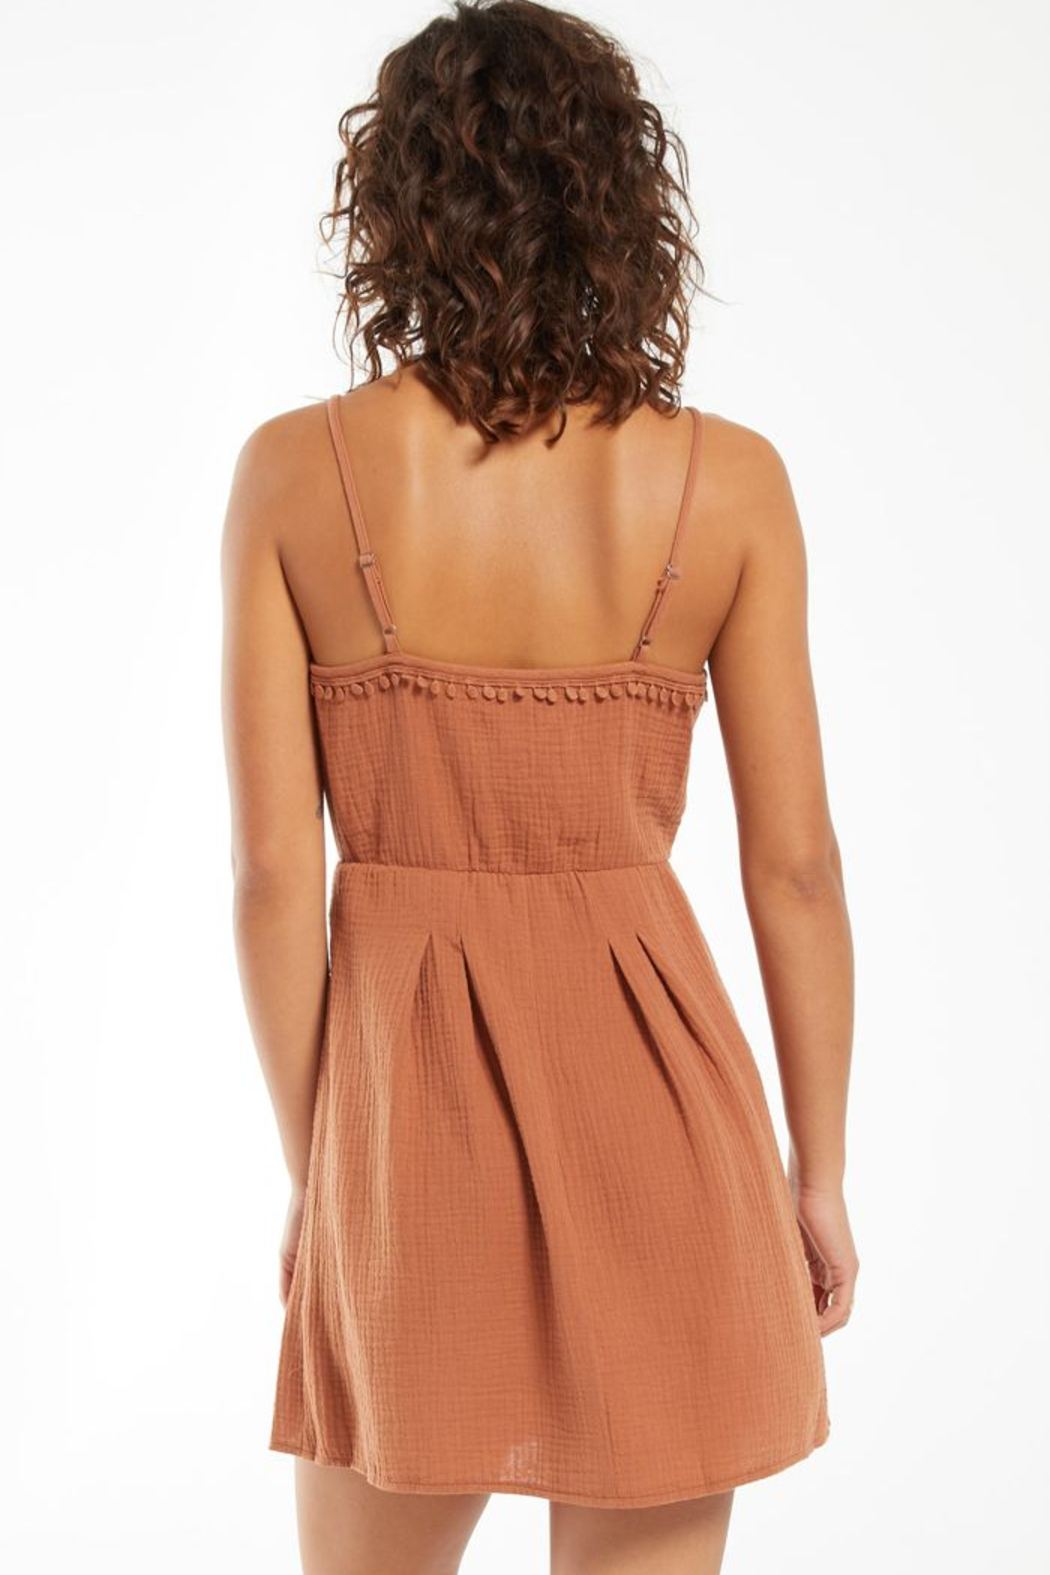 z supply Umbra Gauze Dress - Back Cropped Image